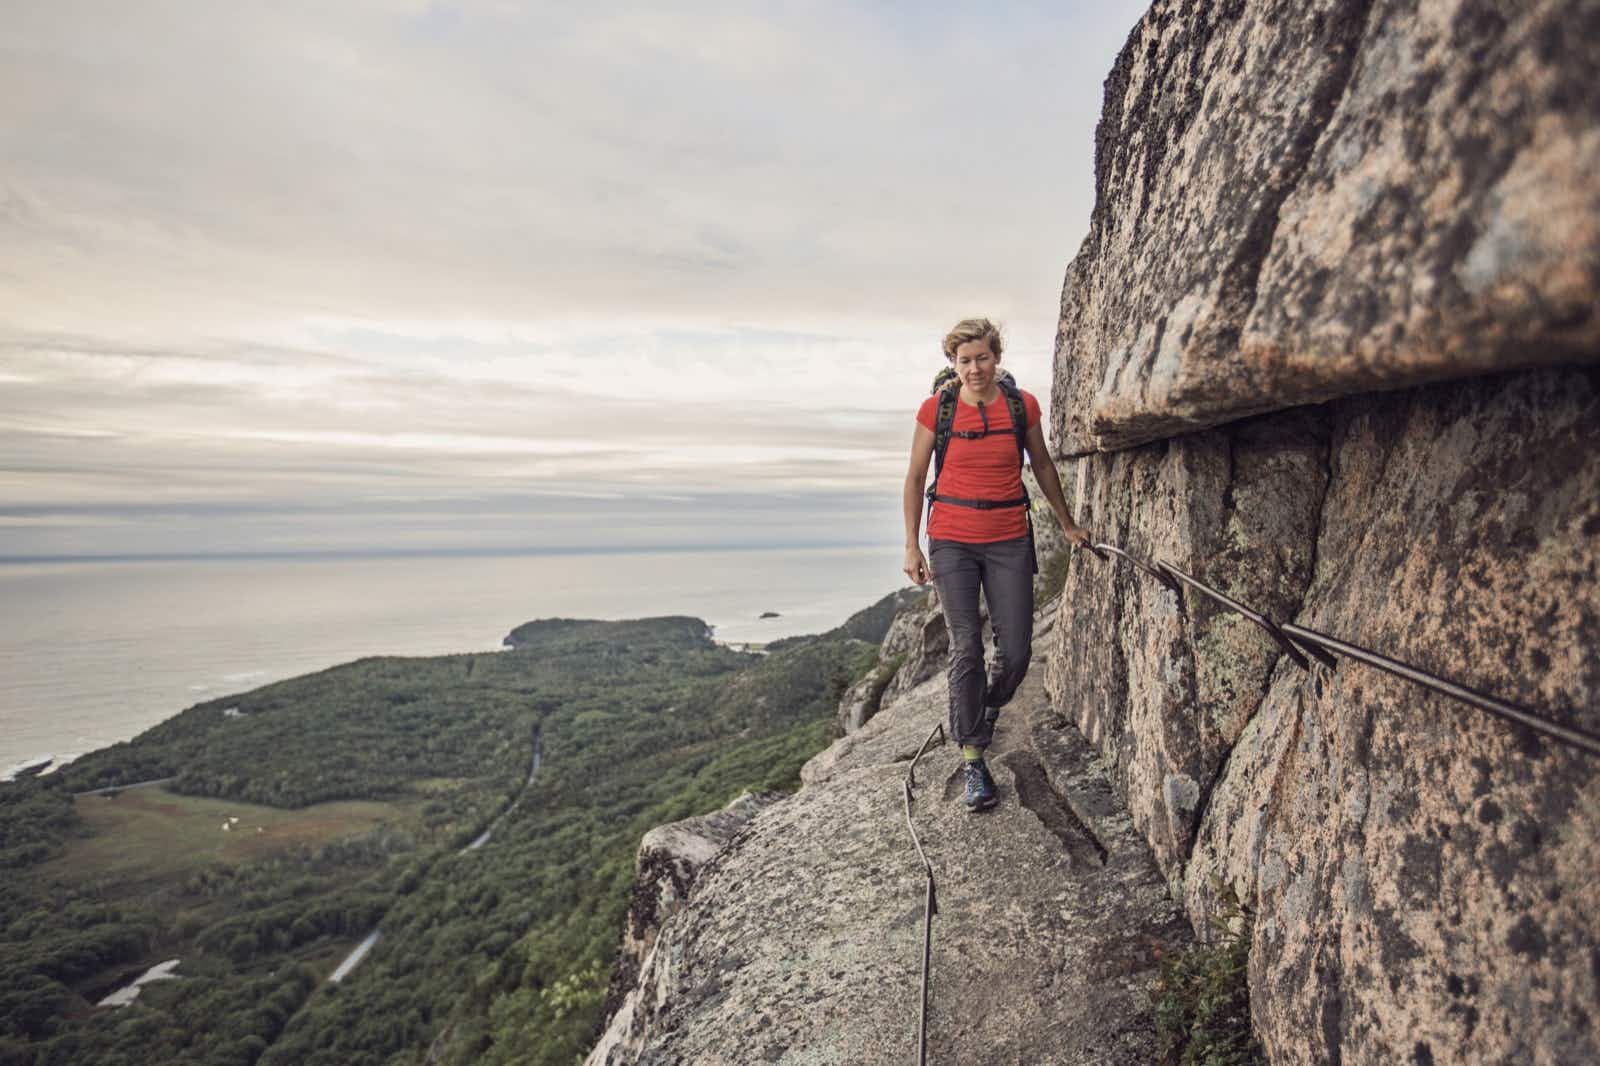 A woman hikes along the cliff edge in Maine's Acadia National Park, Maine